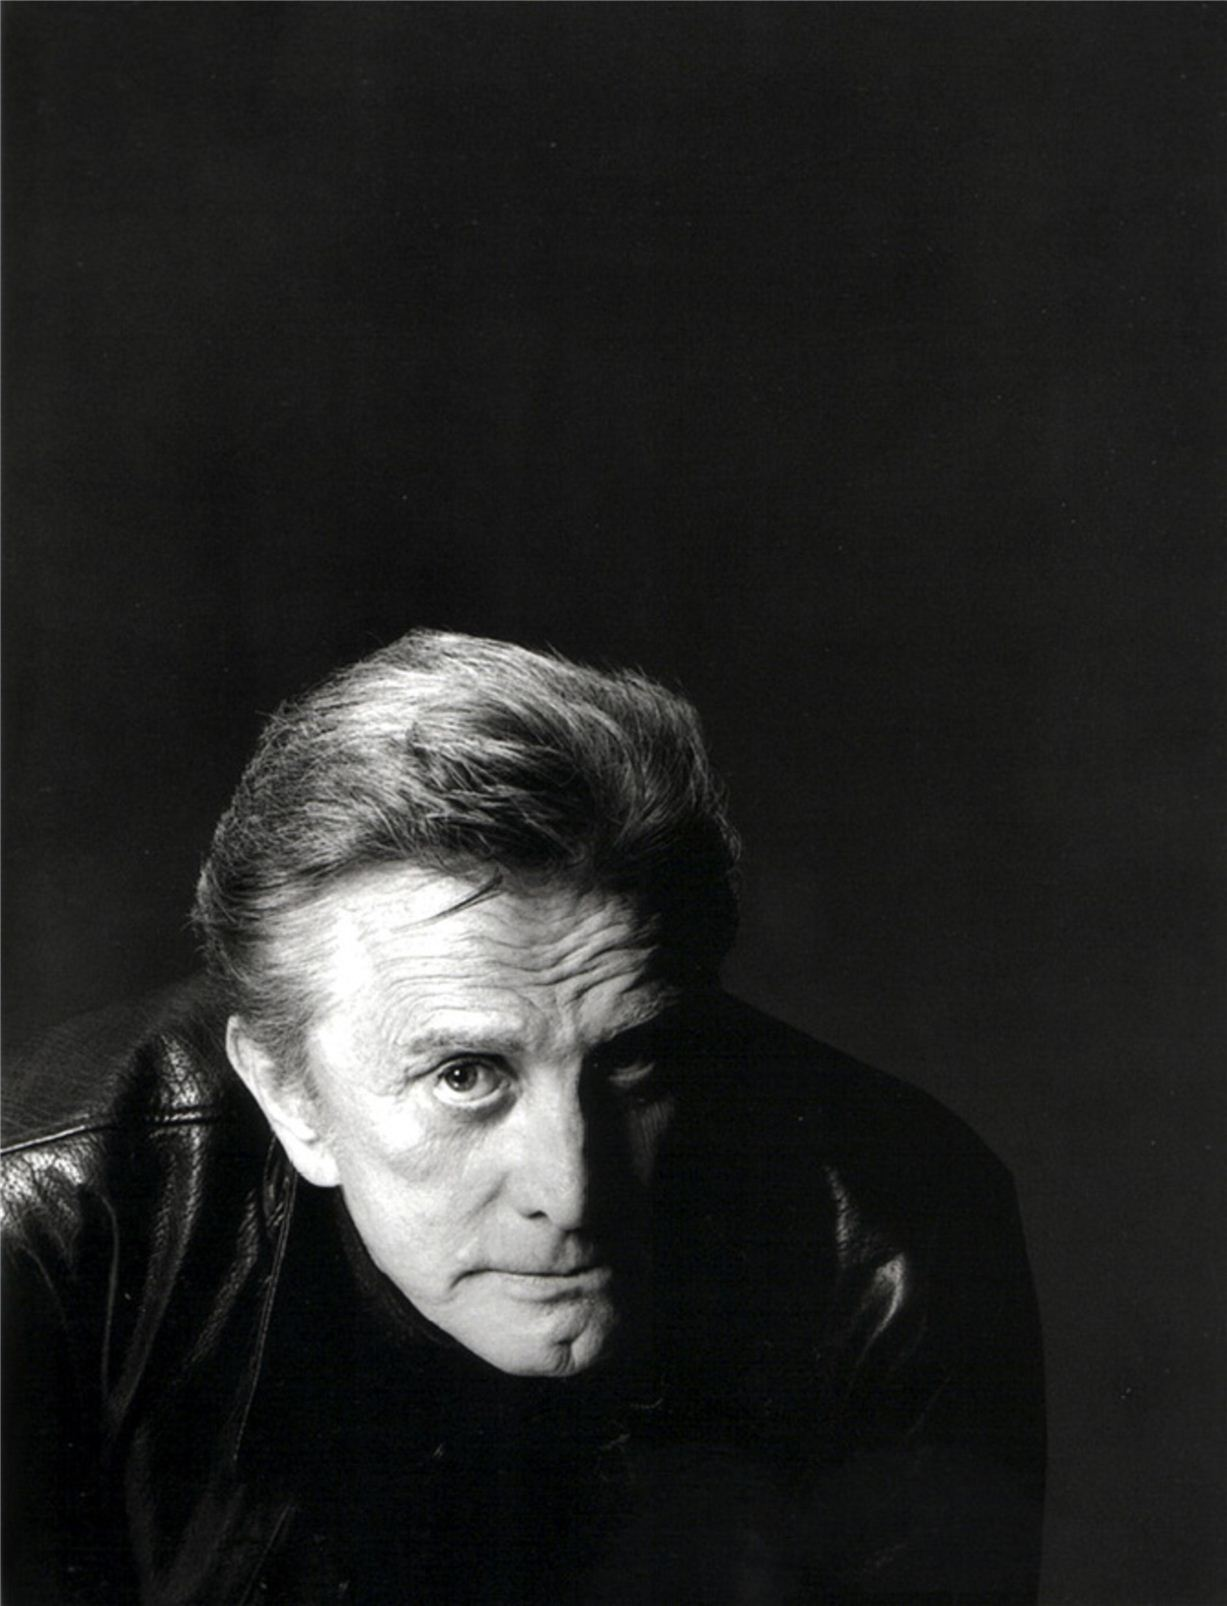 Kirk Douglas / Кирк Дуглас - портрет фотографа Грега Гормана / Greg Gorman